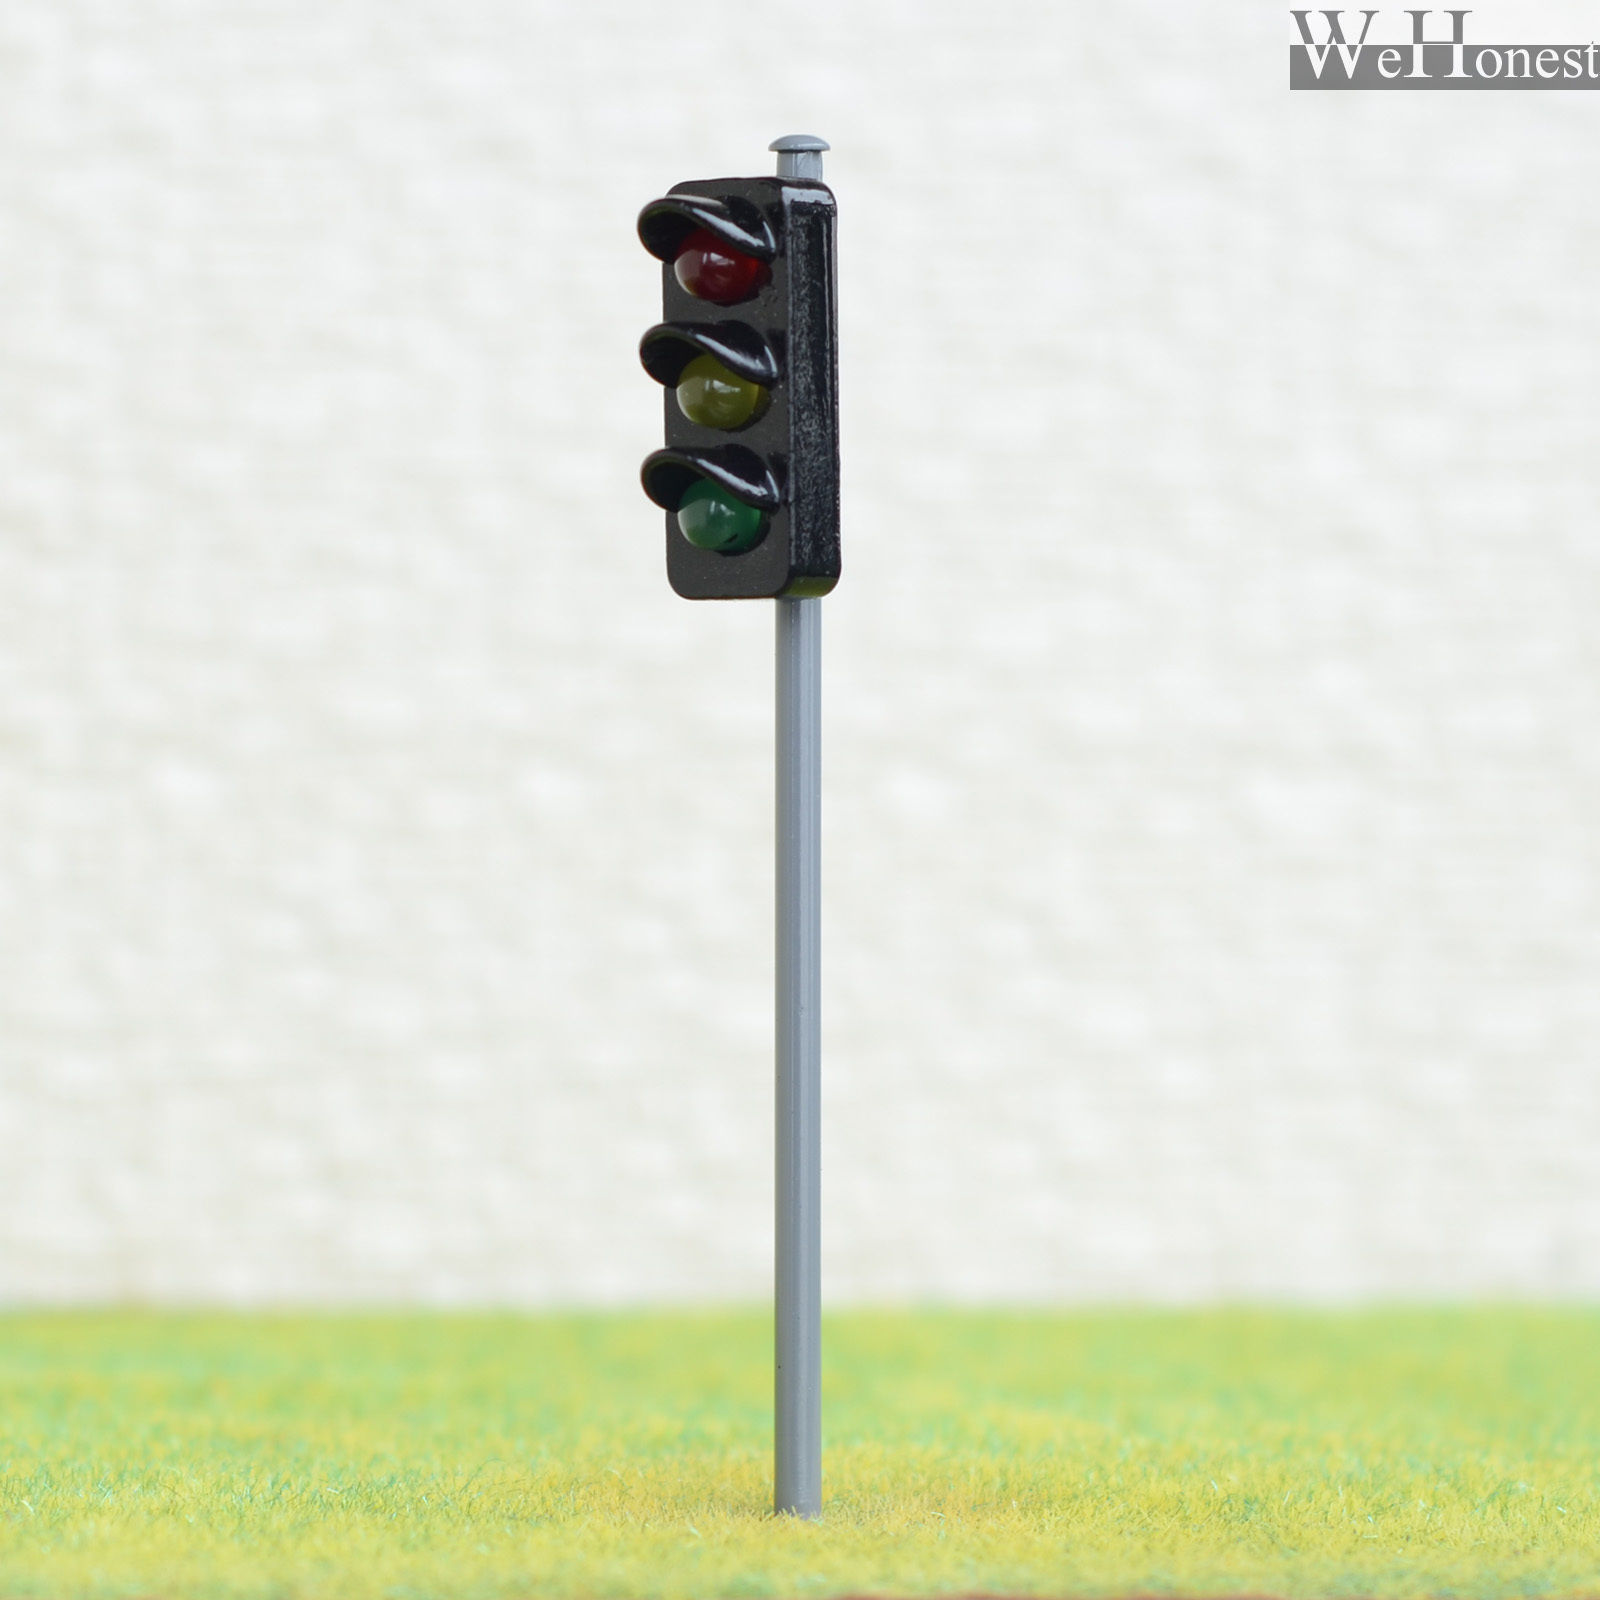 6 99 2 X Traffic Signal Light O Scale Model Railroad Crossing Walk Led Lamp Gr3 Ebay Collectibles Traffic Signal Led Lamp Led